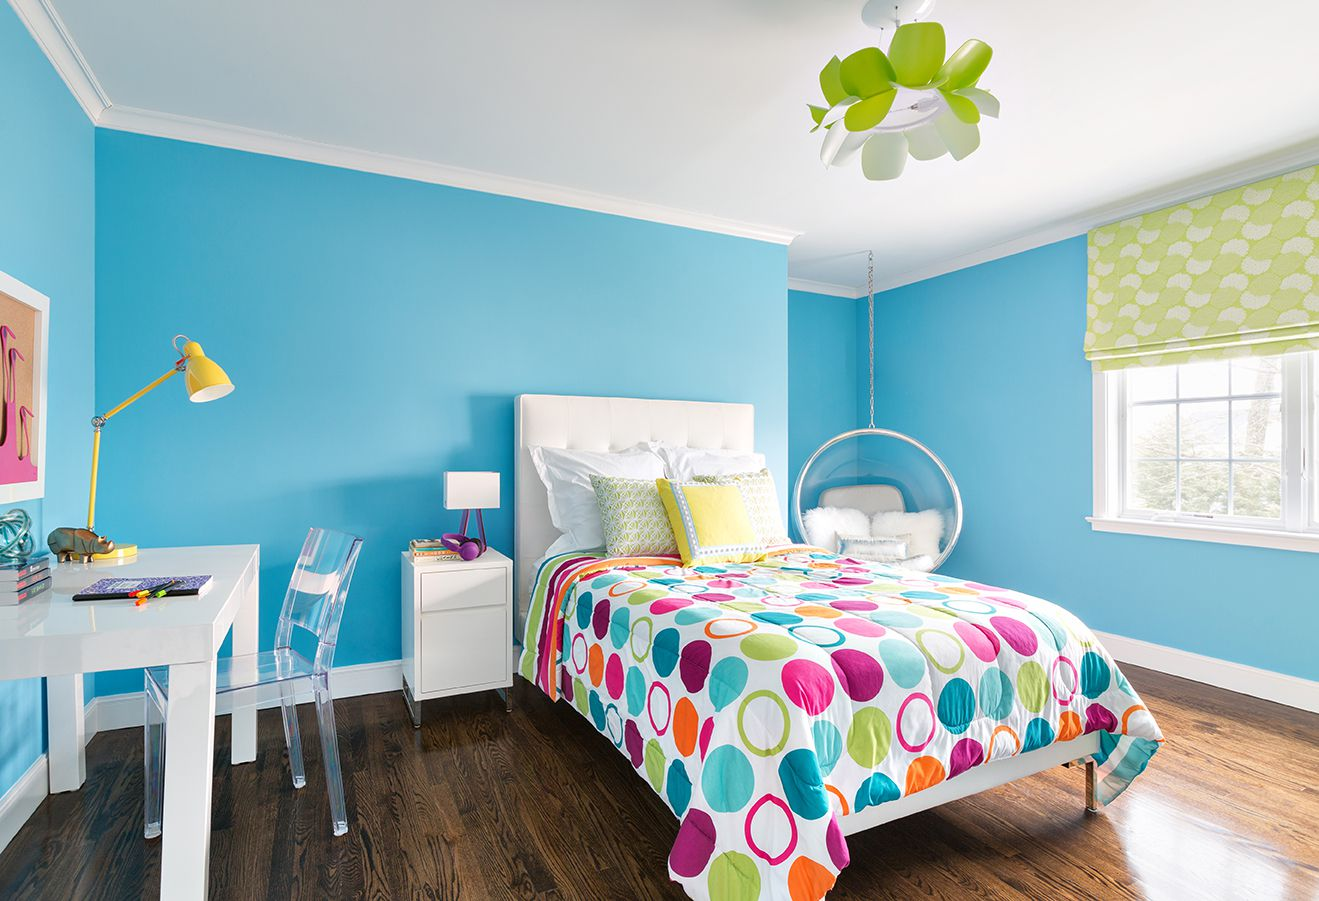 Use Colorful Ducet for White Bed inside Room Ideas for Teens with Acrylic Chair and Hanging bubble Chair